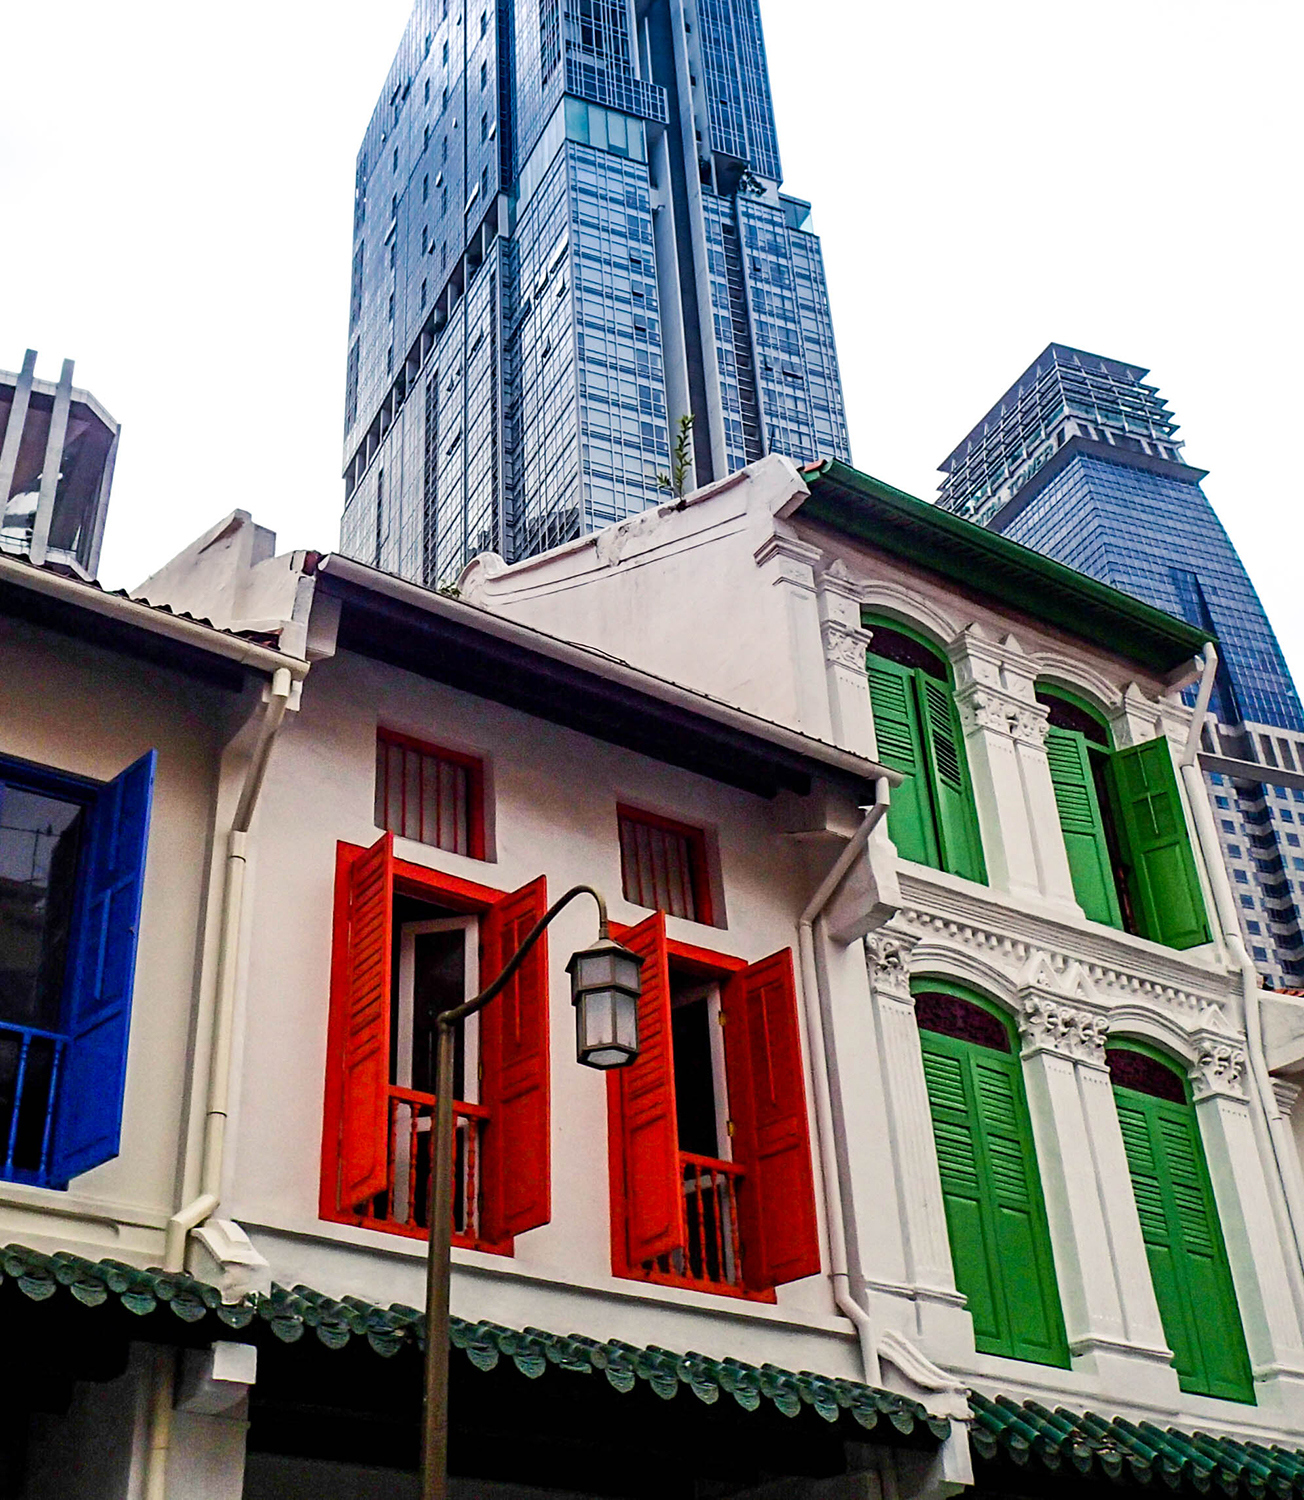 <p>A pleasing clash of styles at the transition between Chinatown and the Central business district. Amoy Street is full of Singapore's characteristic shophouses, which typically combine commercial activities (shops, restaurants) on the ground floor with residences above.</p>